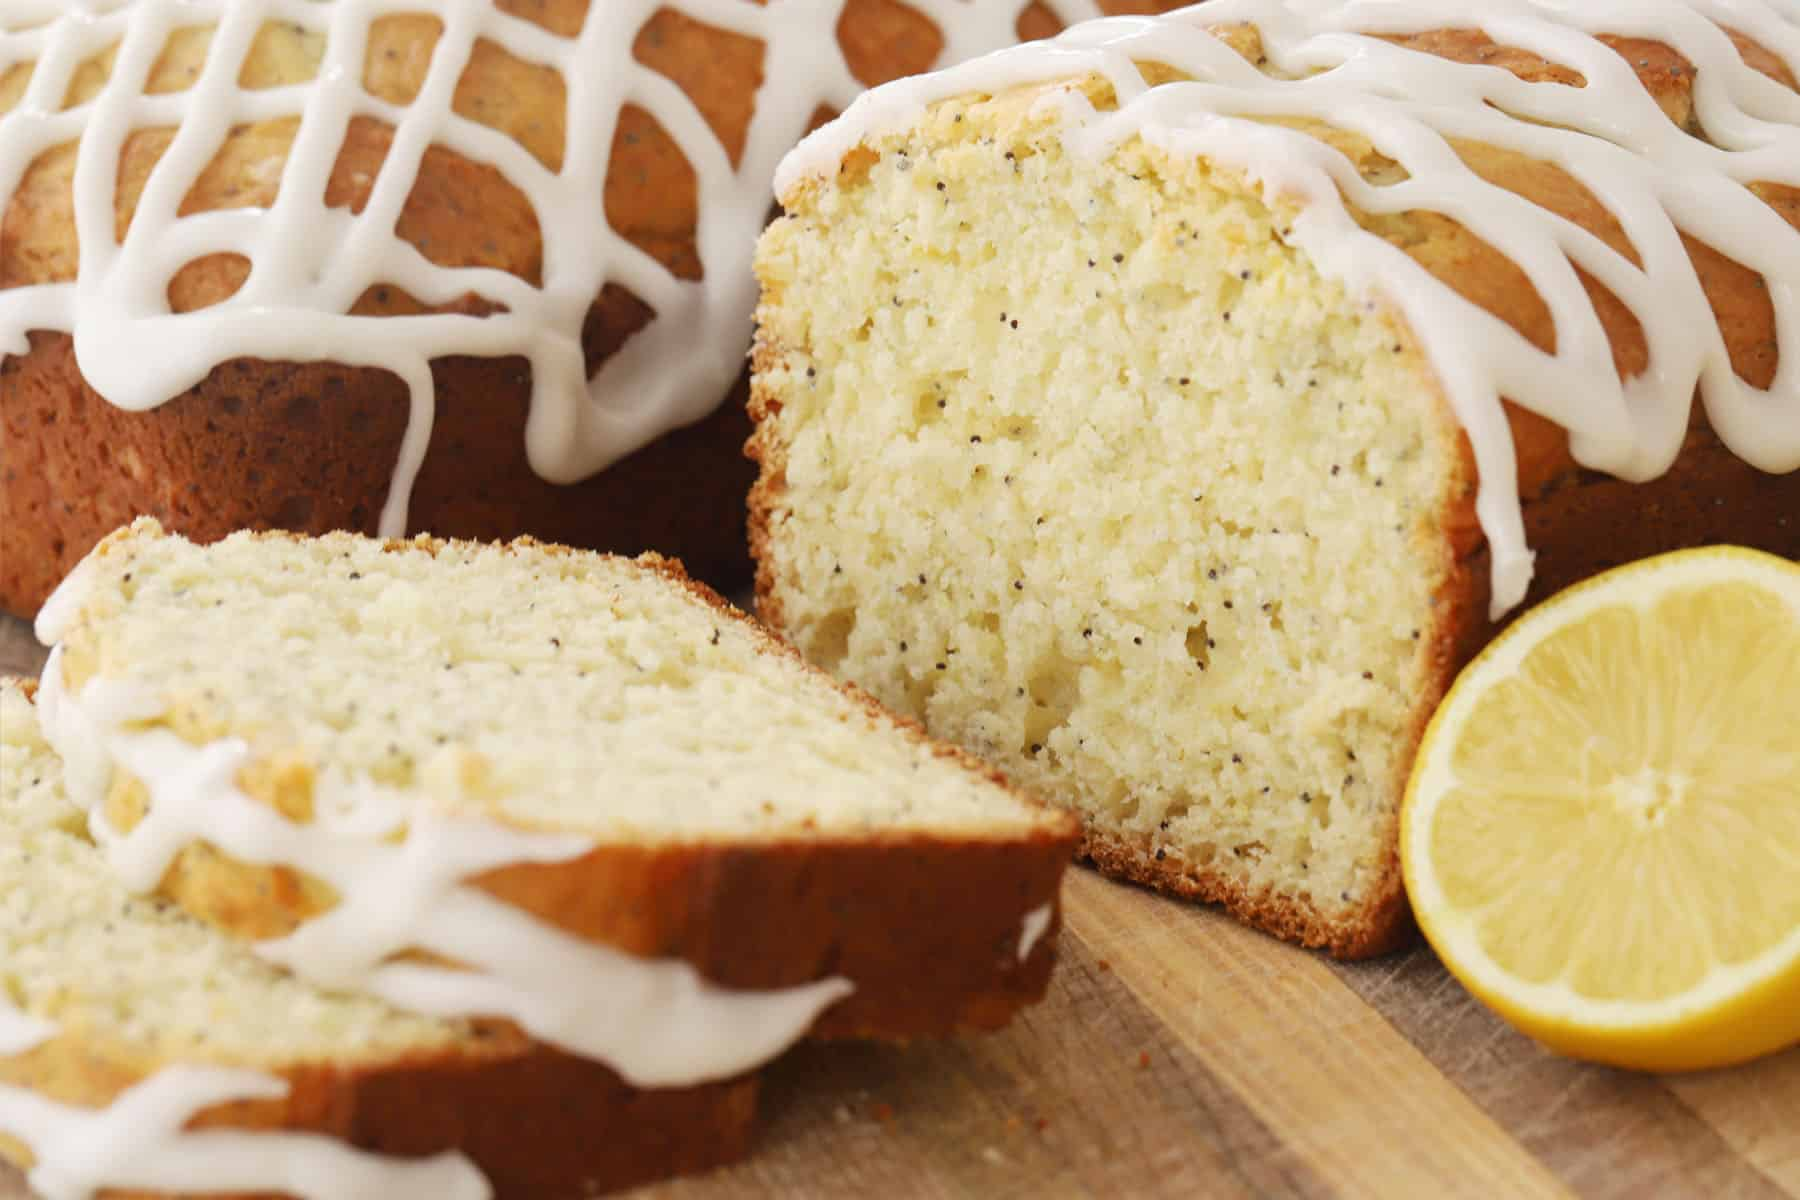 Loaves of lemon poppyseed bread topped with lemon glaze and sliced on a cutting board.